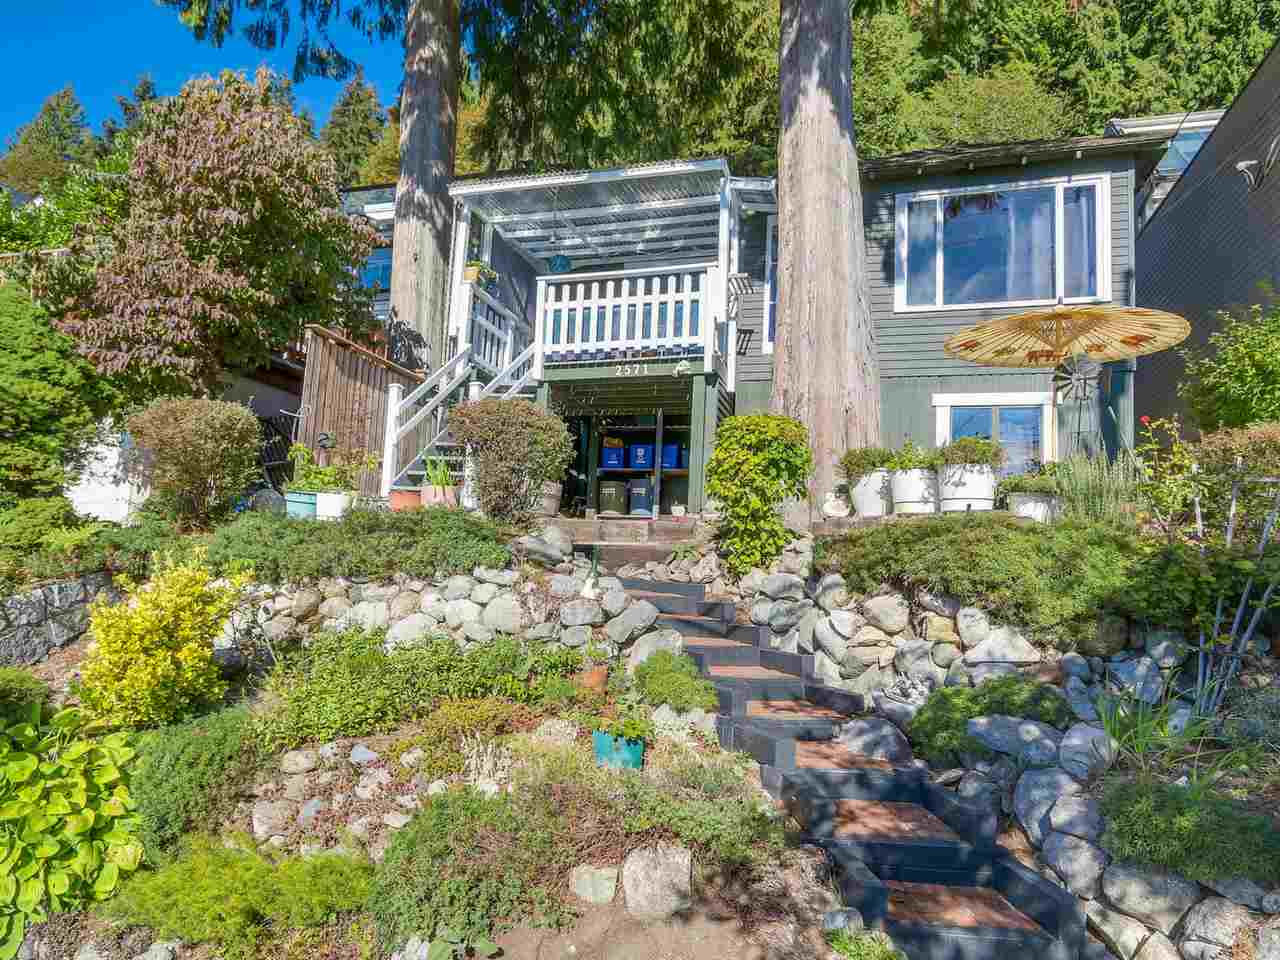 SPECTACULAR OCEAN VIEWS! Own your piece of paradise in desirable Deep Cove. Neat as a pin home on sunny Panorama Drive. Watch the boats and paddlers right from your own sunny deck. Stroll to the beach for swim or a paddle, steps to the village shops and bistros, and enjoy natures forest trails at your back door. A quick oceanside walk to Cove Cliff Elementary and Seycove Secondary. Minutes to Seymour Mtn Ski Hill and easy access to downtown. Lots of opportunity here to live in or plan your ocean view dream home. Don't miss this one! Phone LR to book your private viewing.